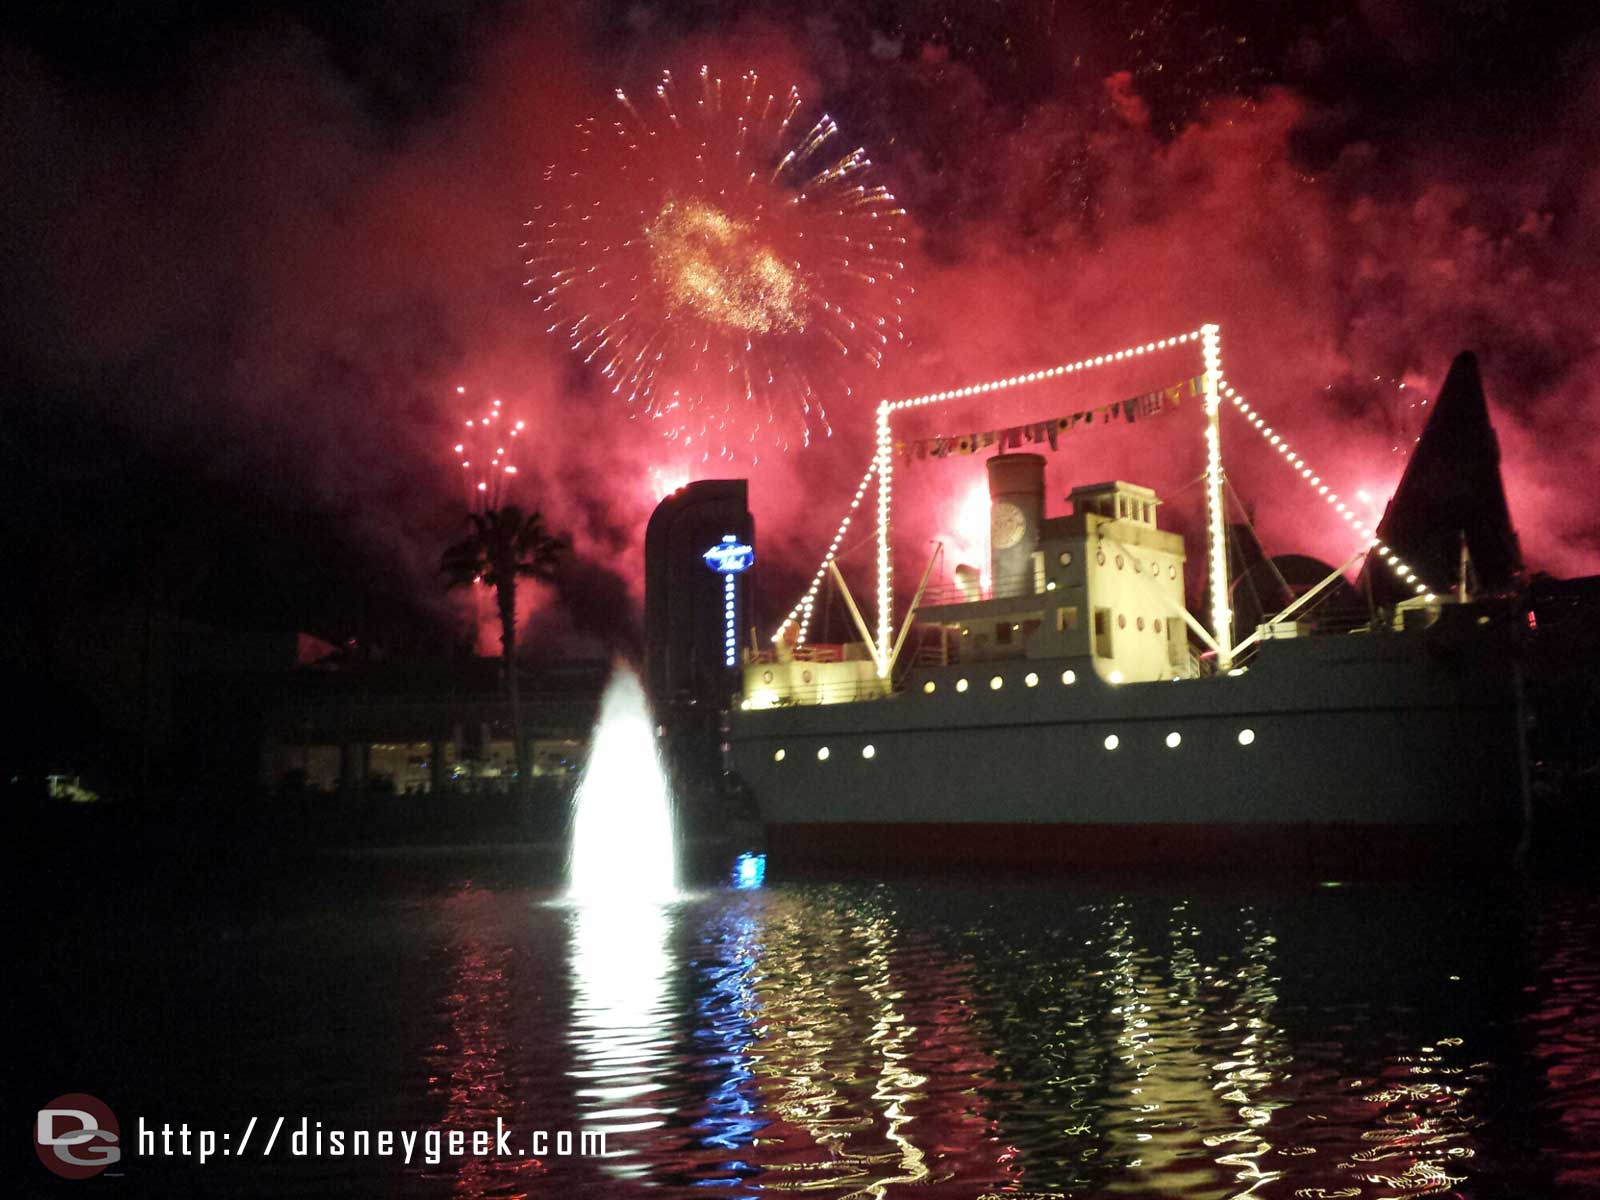 A special 25th Annivesary fireworks show at Disneys Hollywood Studios